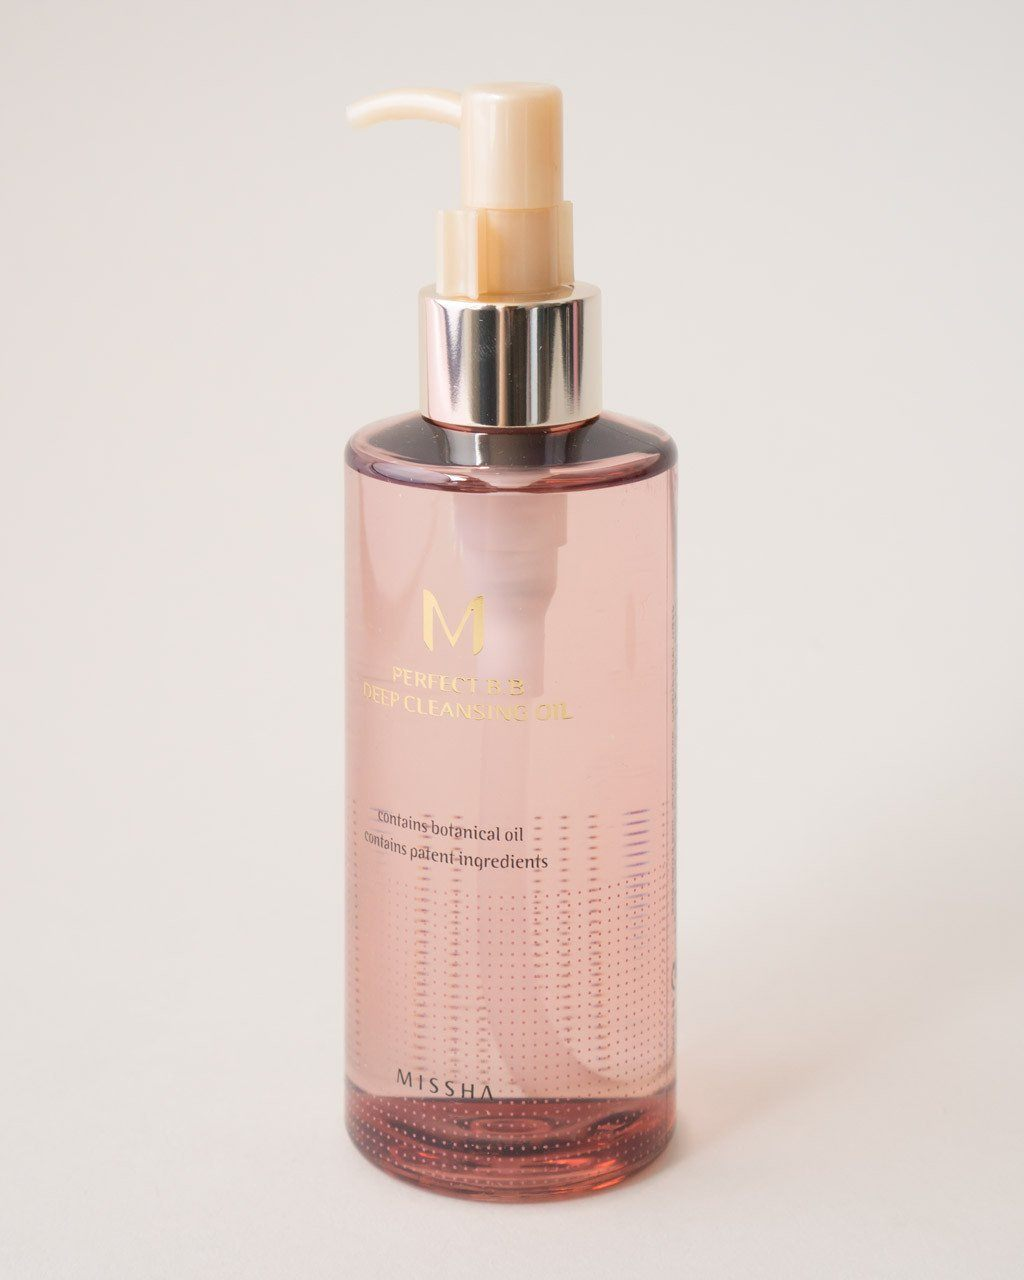 M Perfect BB Deep Cleansing Oil Product Image